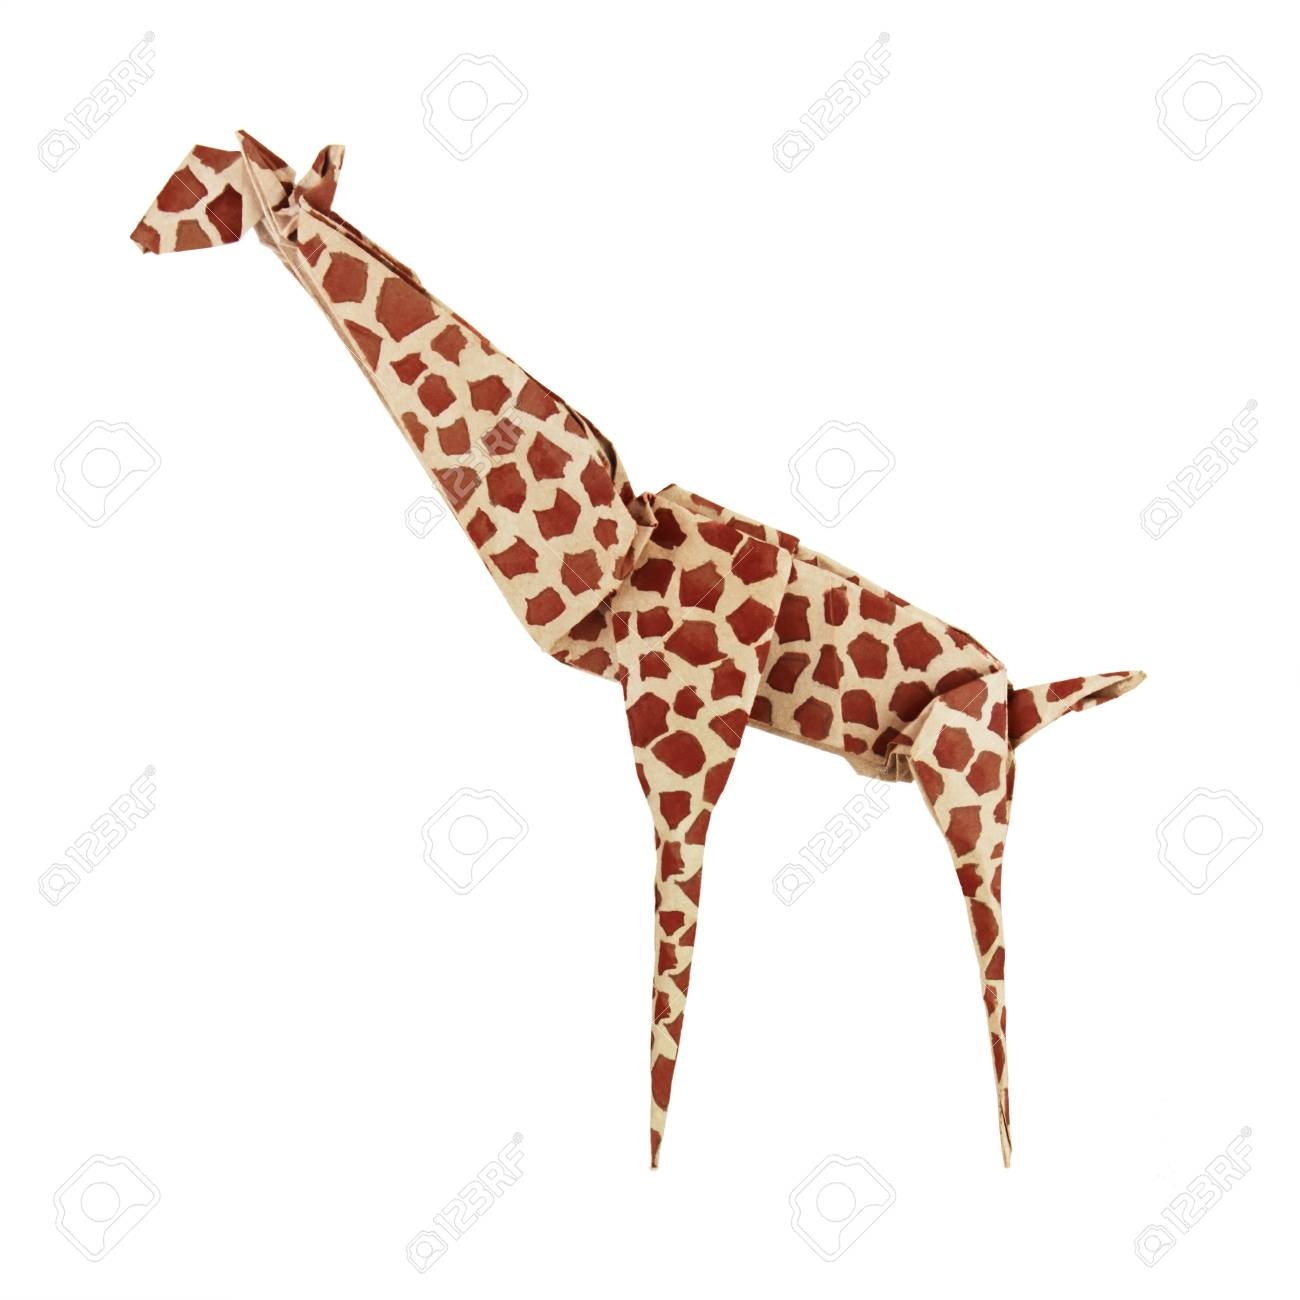 Origami Paper Giraffe On A White Background Stock Photo